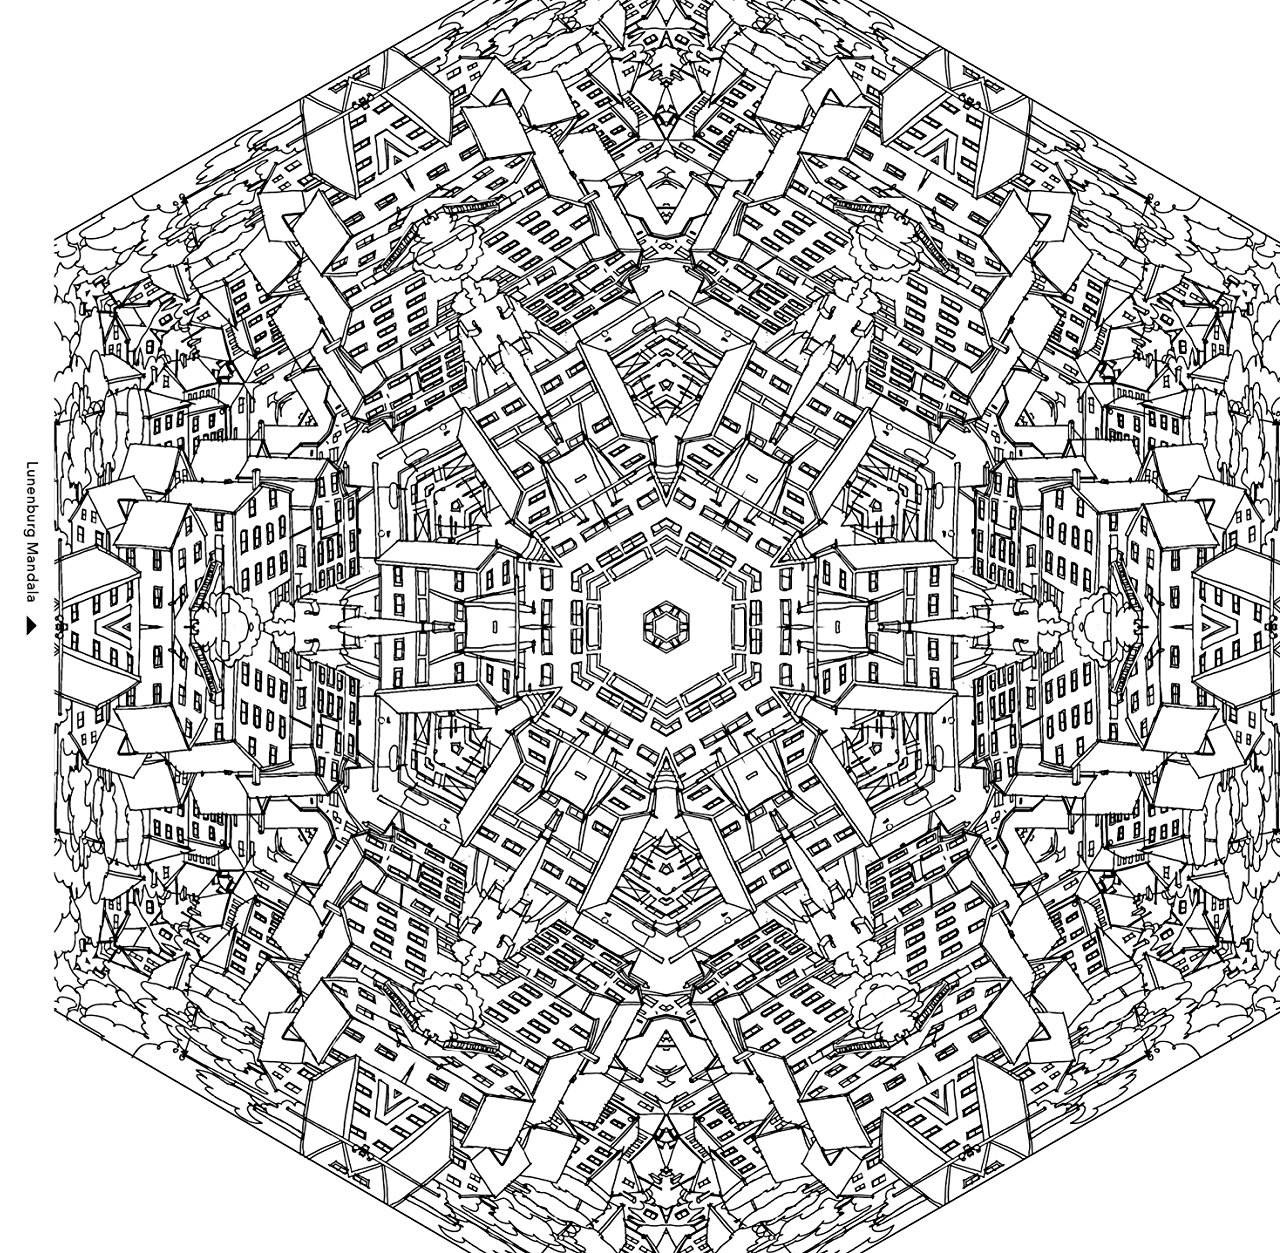 City buildings in a mandala - Architecture Adult Coloring Pages - Page 2